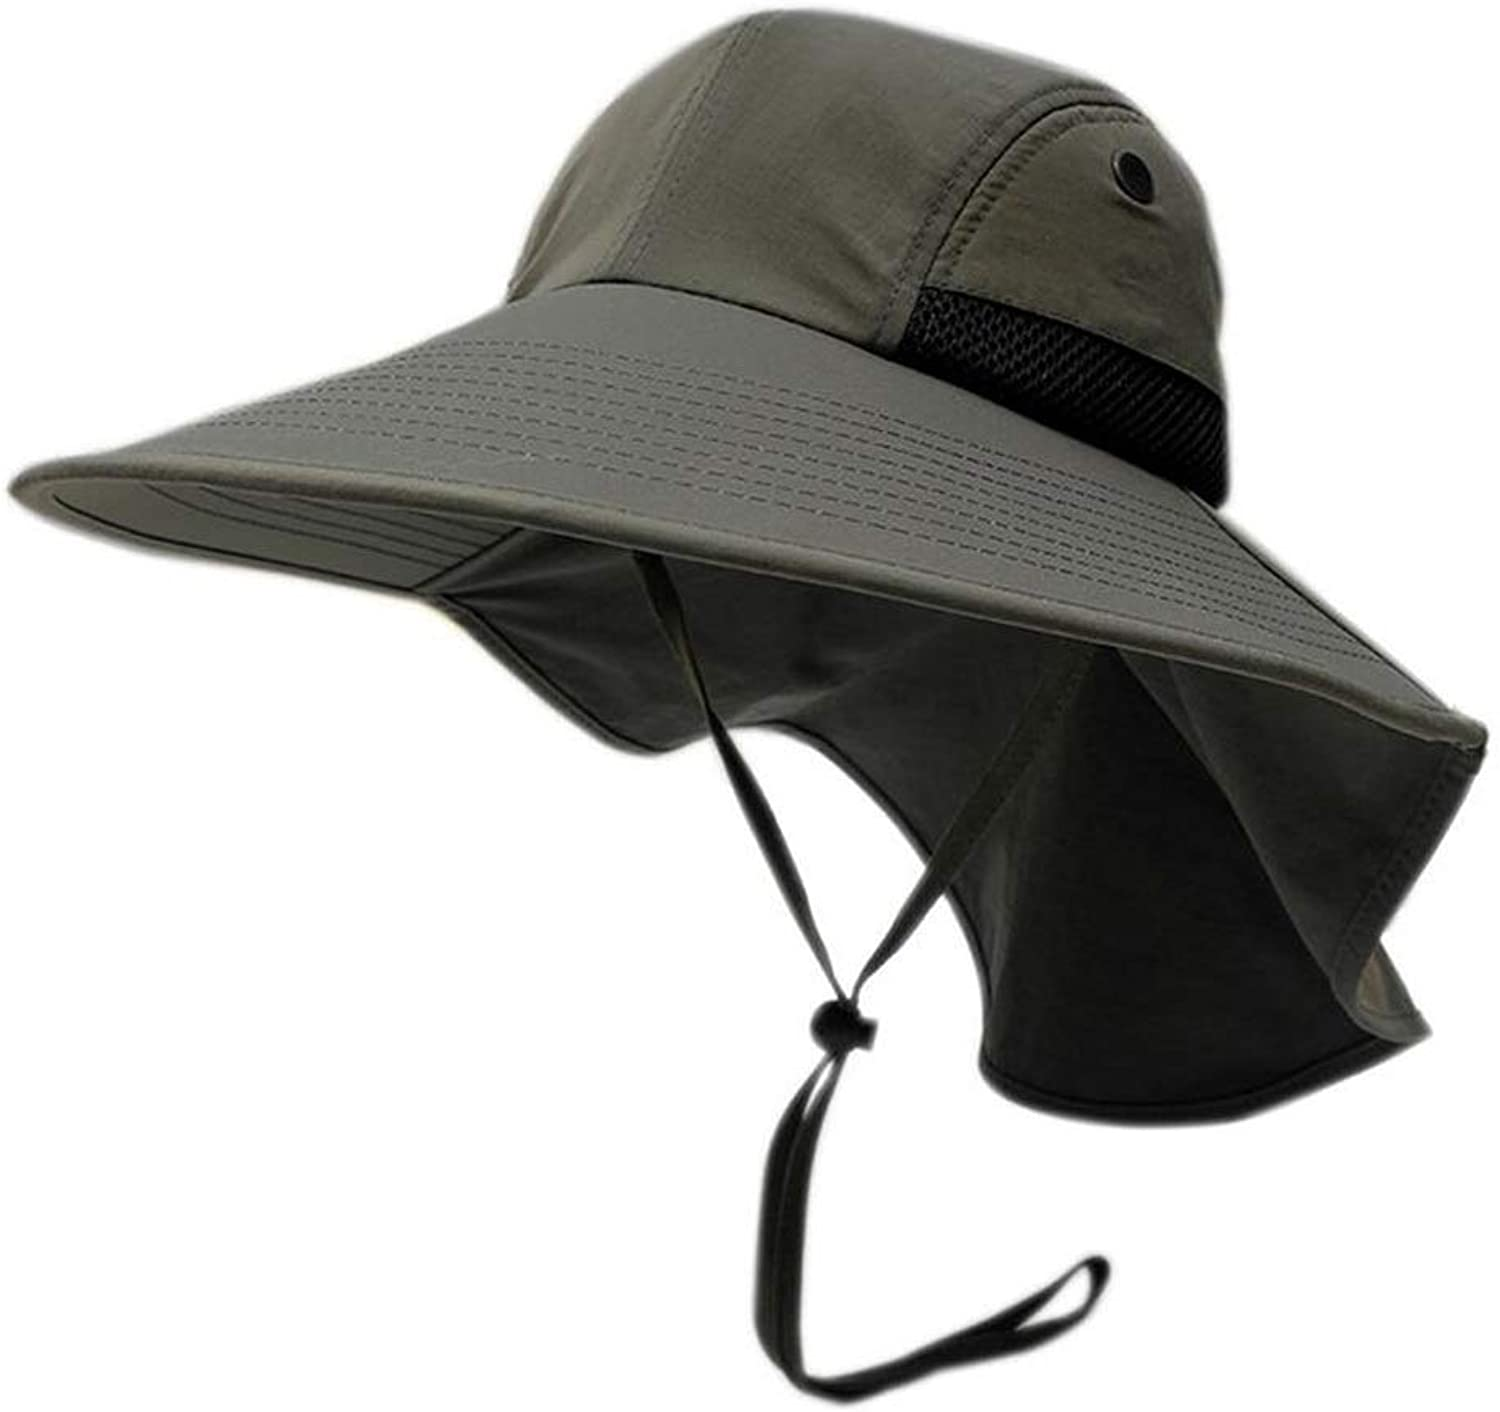 YJLGRYF Sun Hat Male Spring and Summer Sunscreen Visor Waterproof Anti-UV Beach Hat Fishing Fisherman's Hat Leisure 21.2-23.6 inch (color   E)